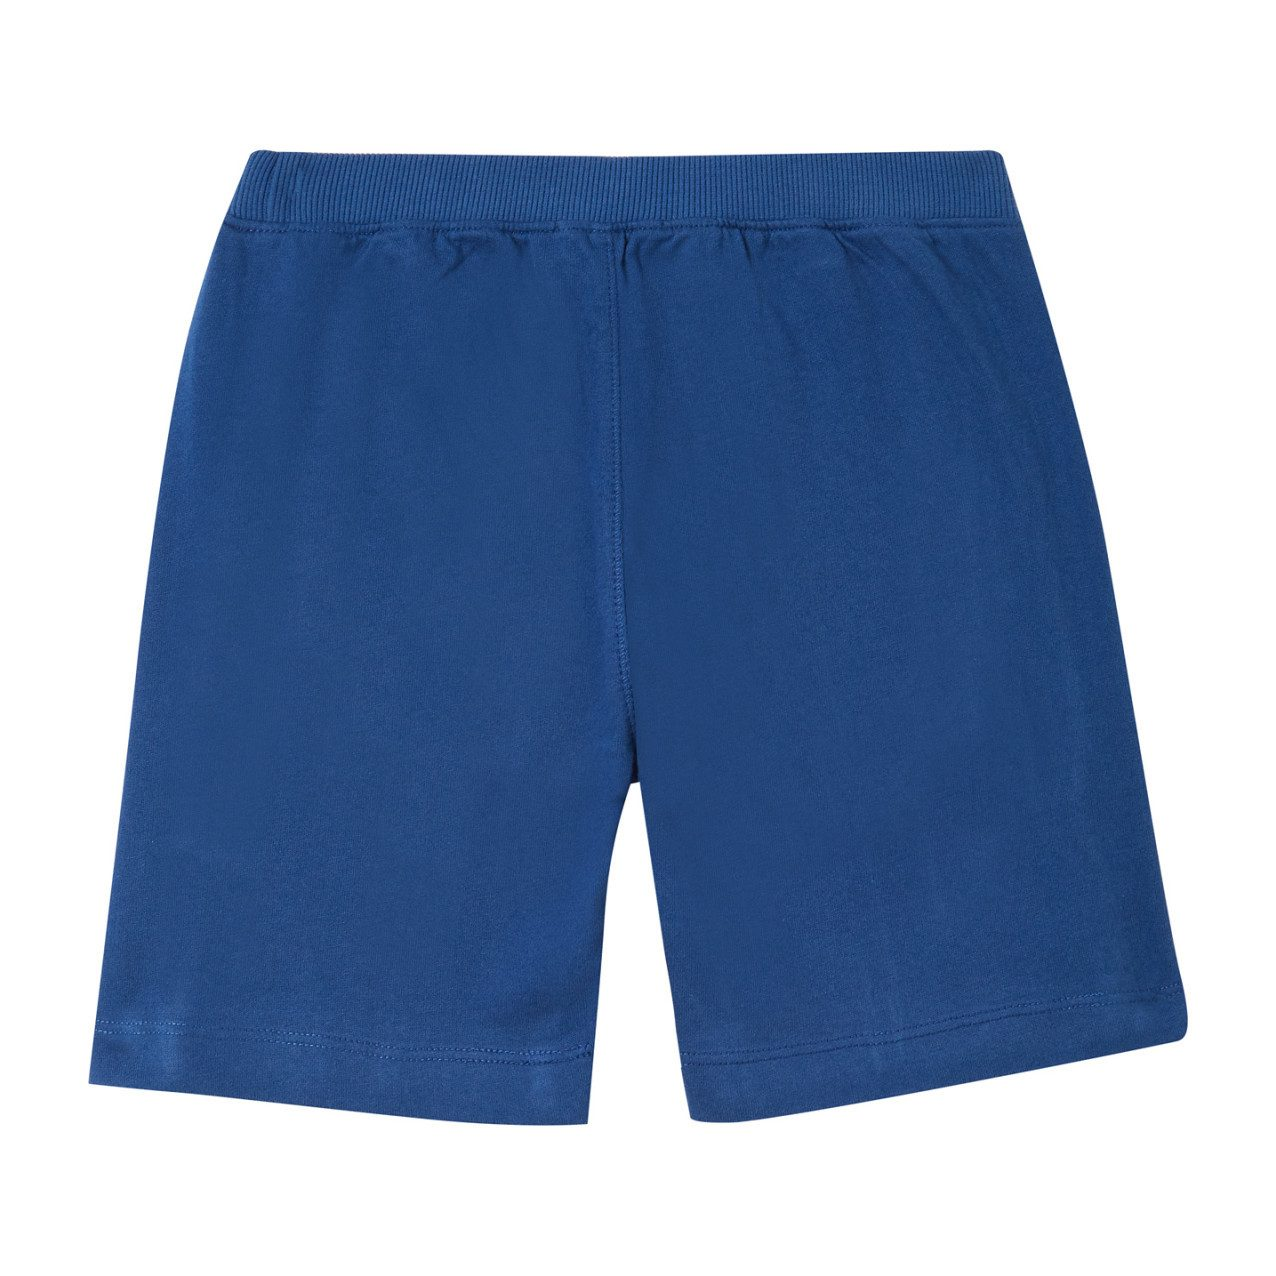 Art & Eden Organic Cotton Anthony Short - Ocean Blue